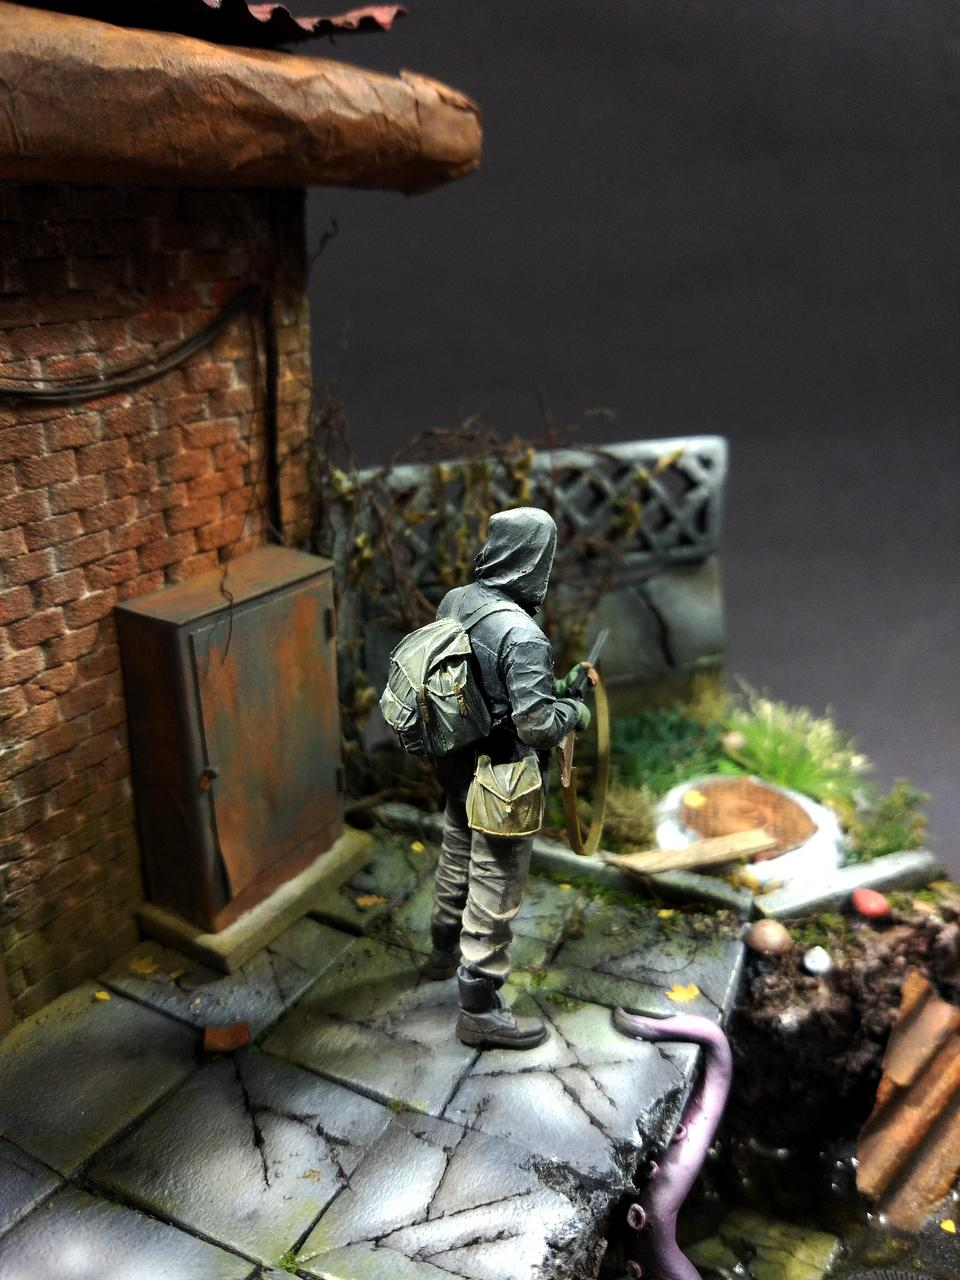 Dioramas and Vignettes: New undiscovered world, photo #9